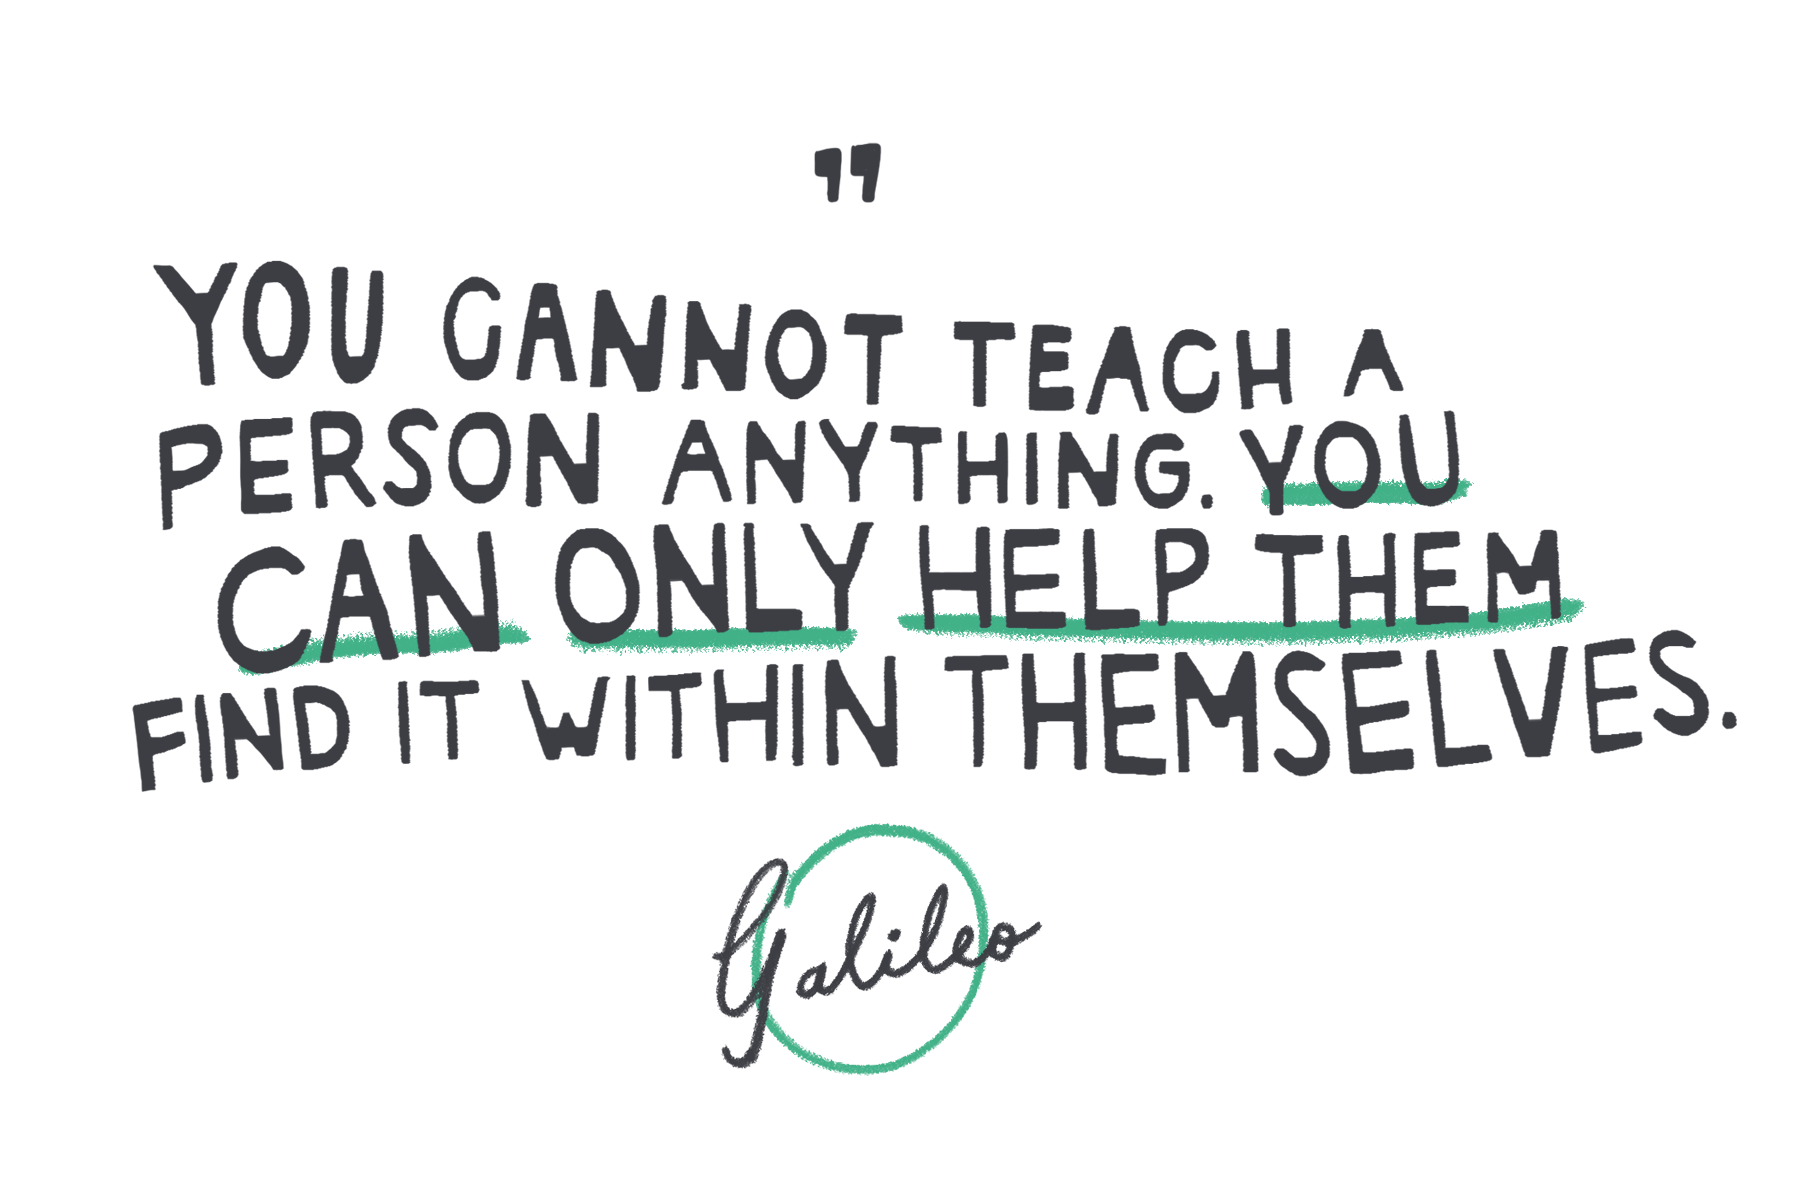 A Galileo Quotation: You cannot teach a person anything. You can only help them find it within themselves.